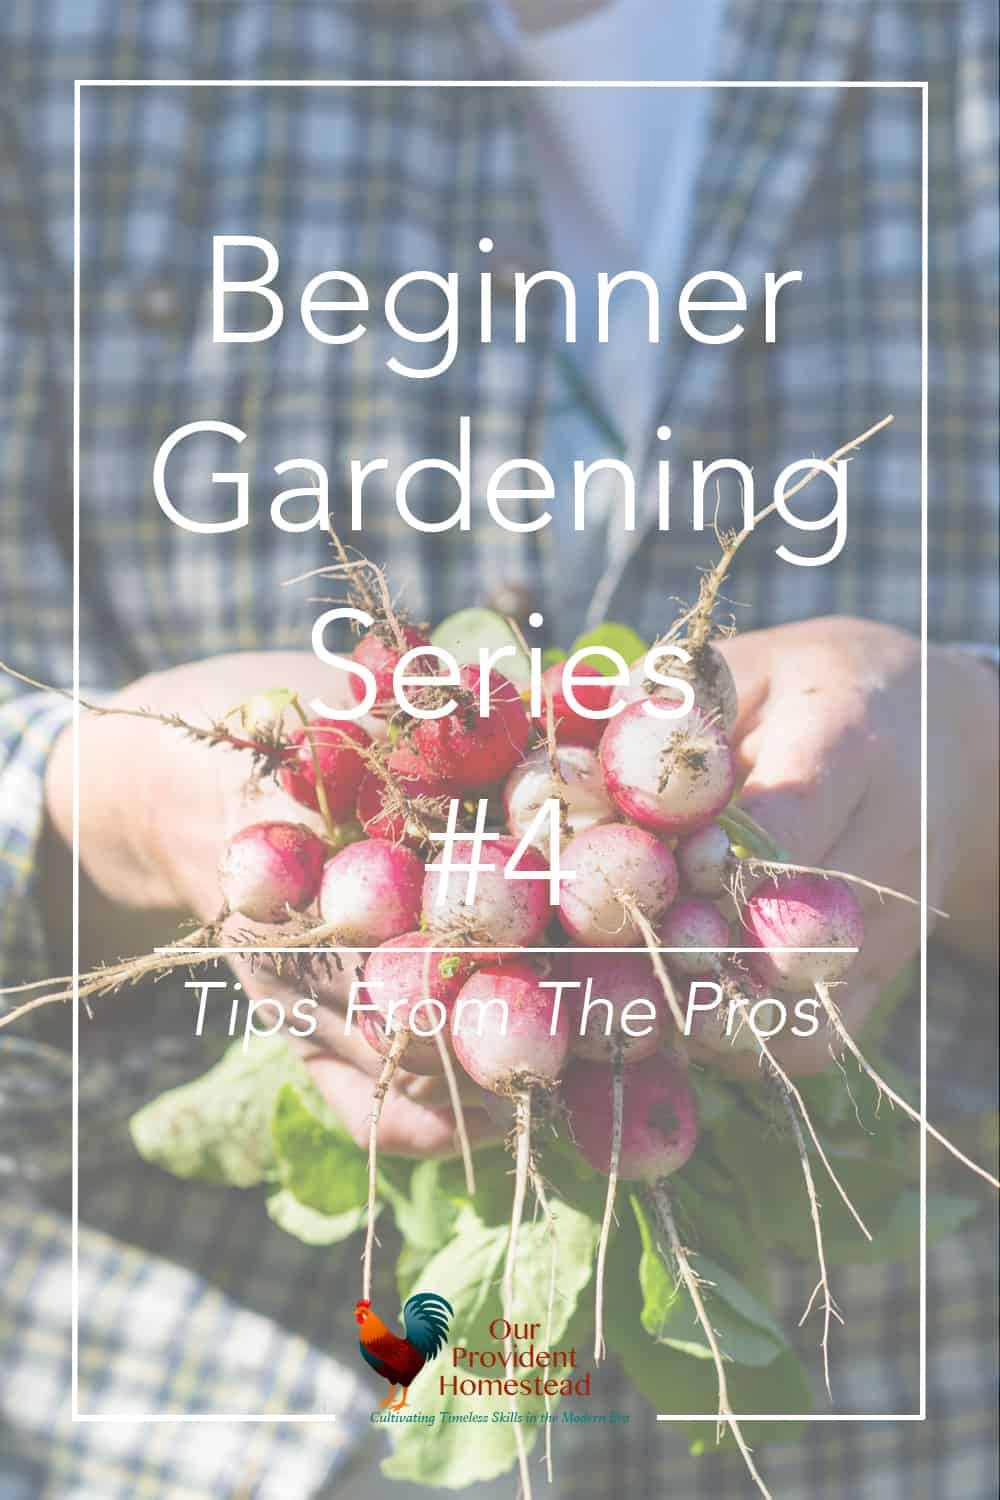 Are you new to gardening? Our beginner gardening series will help answer your questions, including tips and advice from the pros. #gardening #beginnergardening #gardeningtips